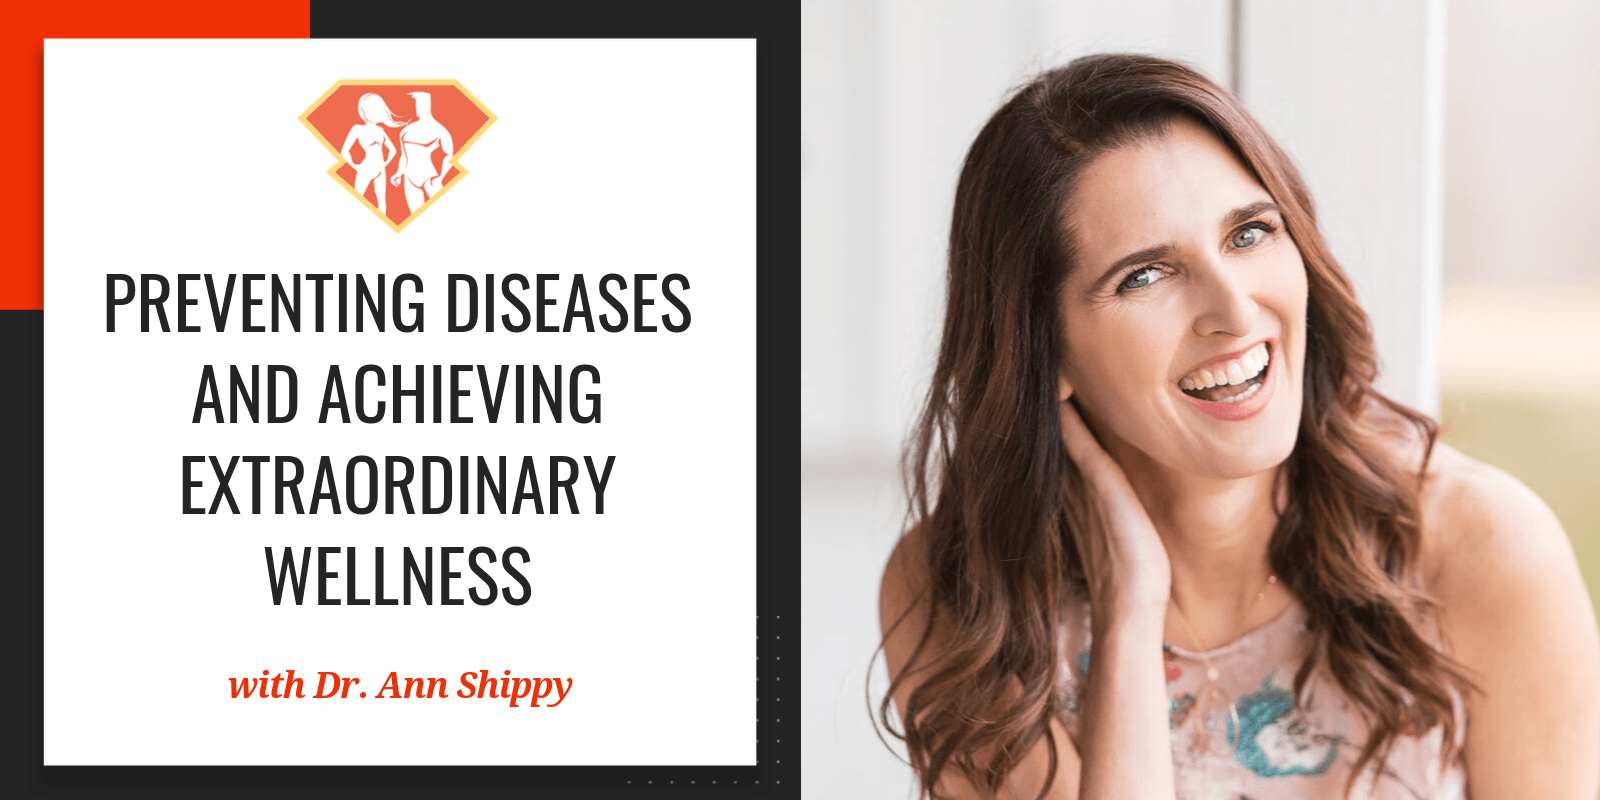 In this episode with Dr. Ann Shippy, we discover a ton of advice on how to prevent various diseases, as well as on how to achieve extraordinary wellness.